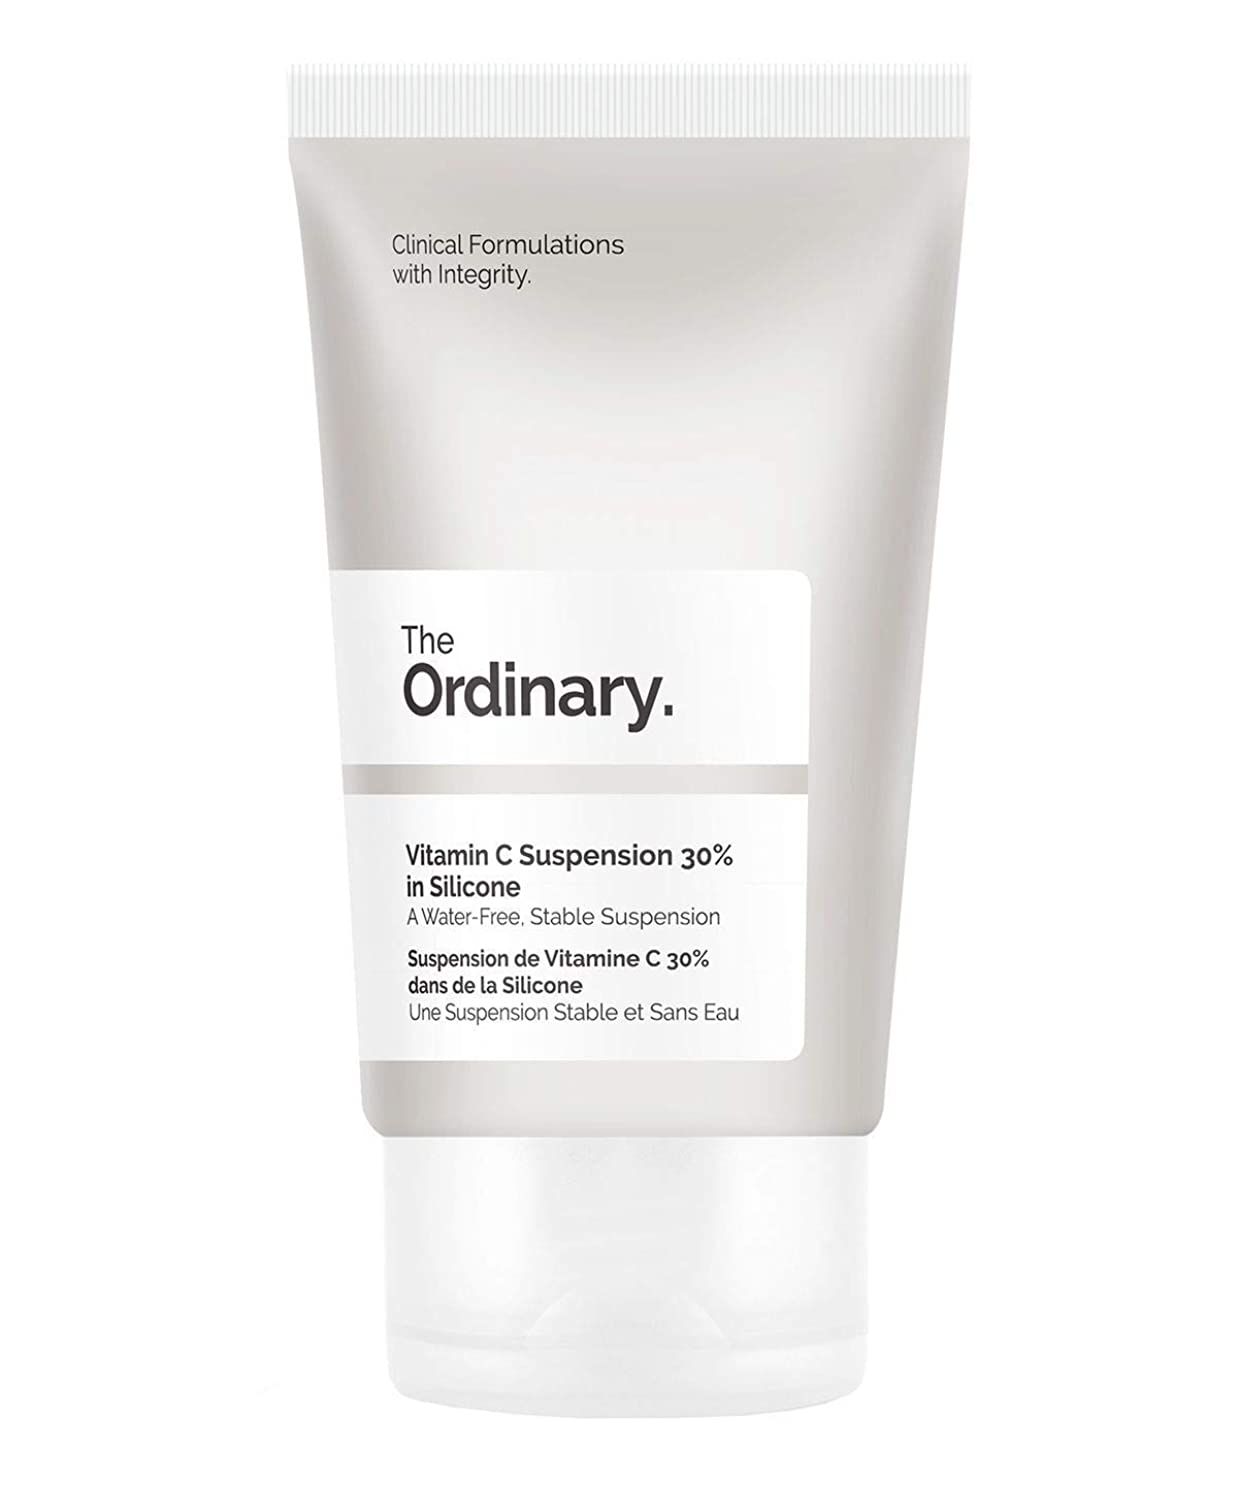 テントアサート上院議員The Ordinary Vitamin C Suspension 30% in Silicone FULL SIZE 30ml